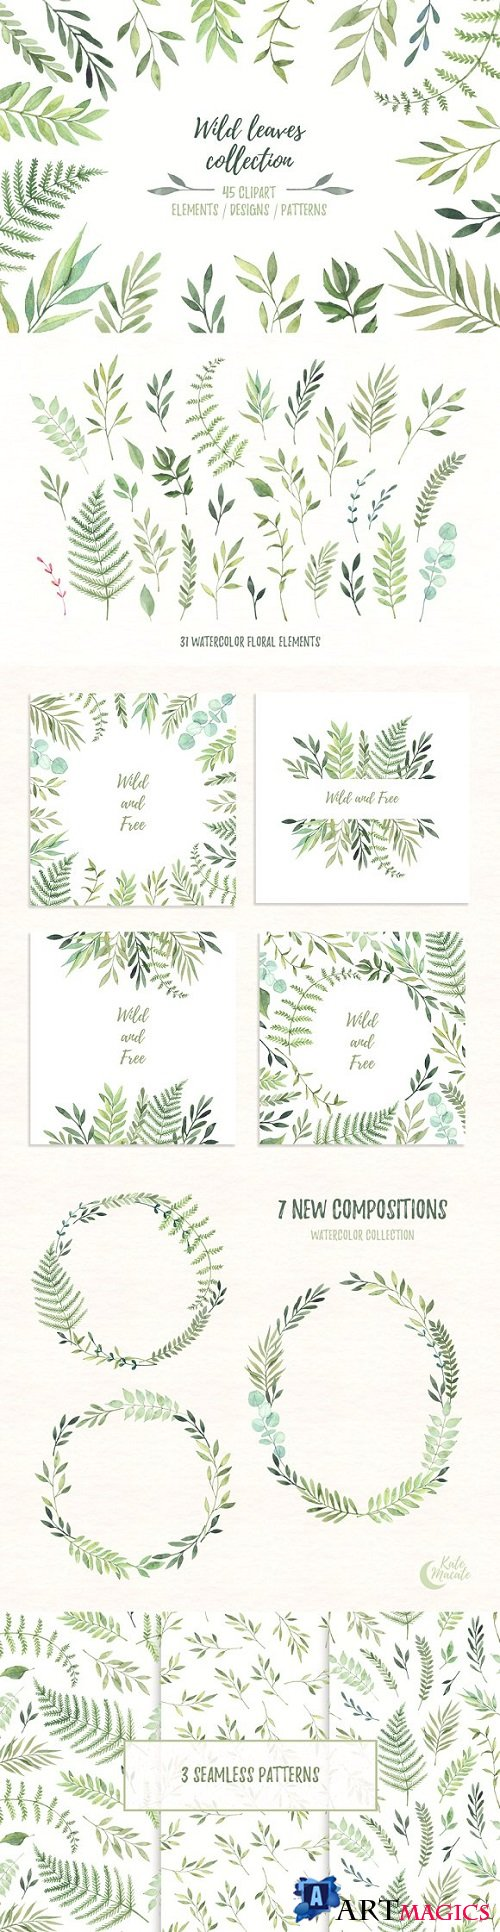 Wild leaves clip art. Watercolor set - 1465949